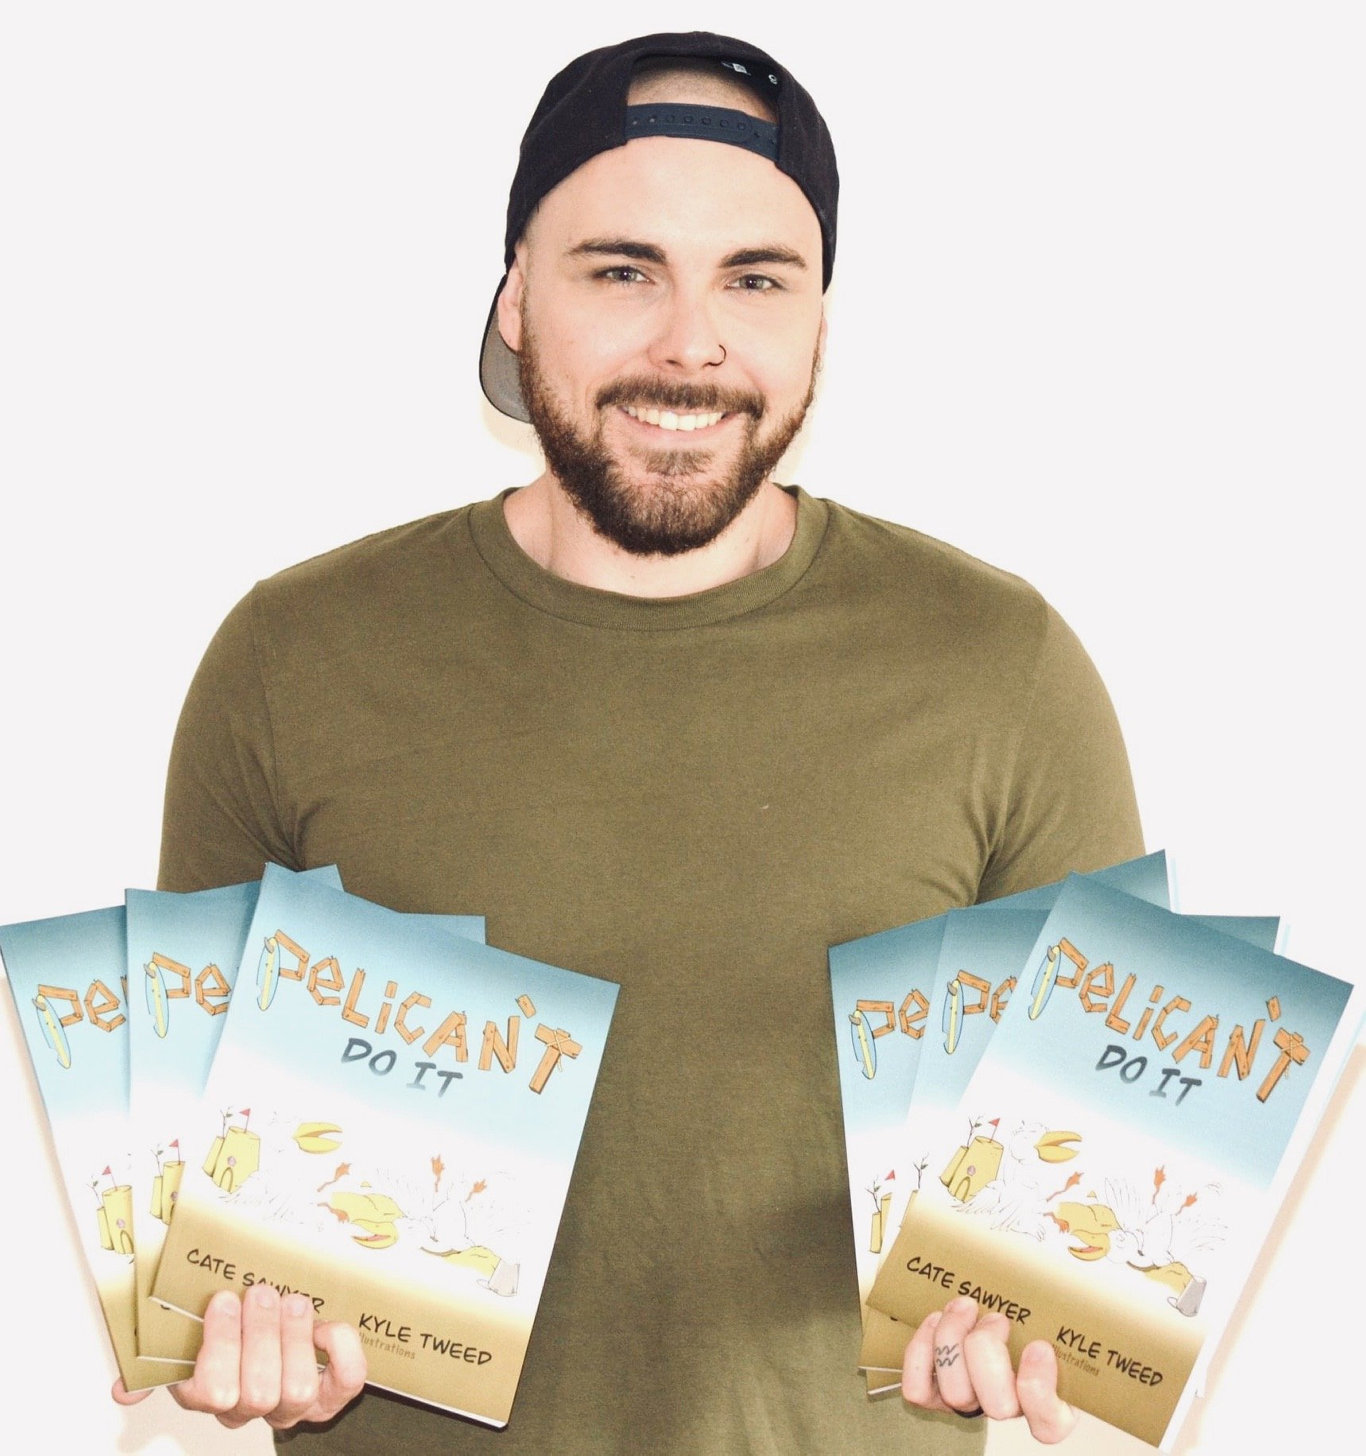 Kyle Tweed is celebrating the launch of his first picture book, Pelican't Do It, authored by picture book veteran Cate Sawyer.